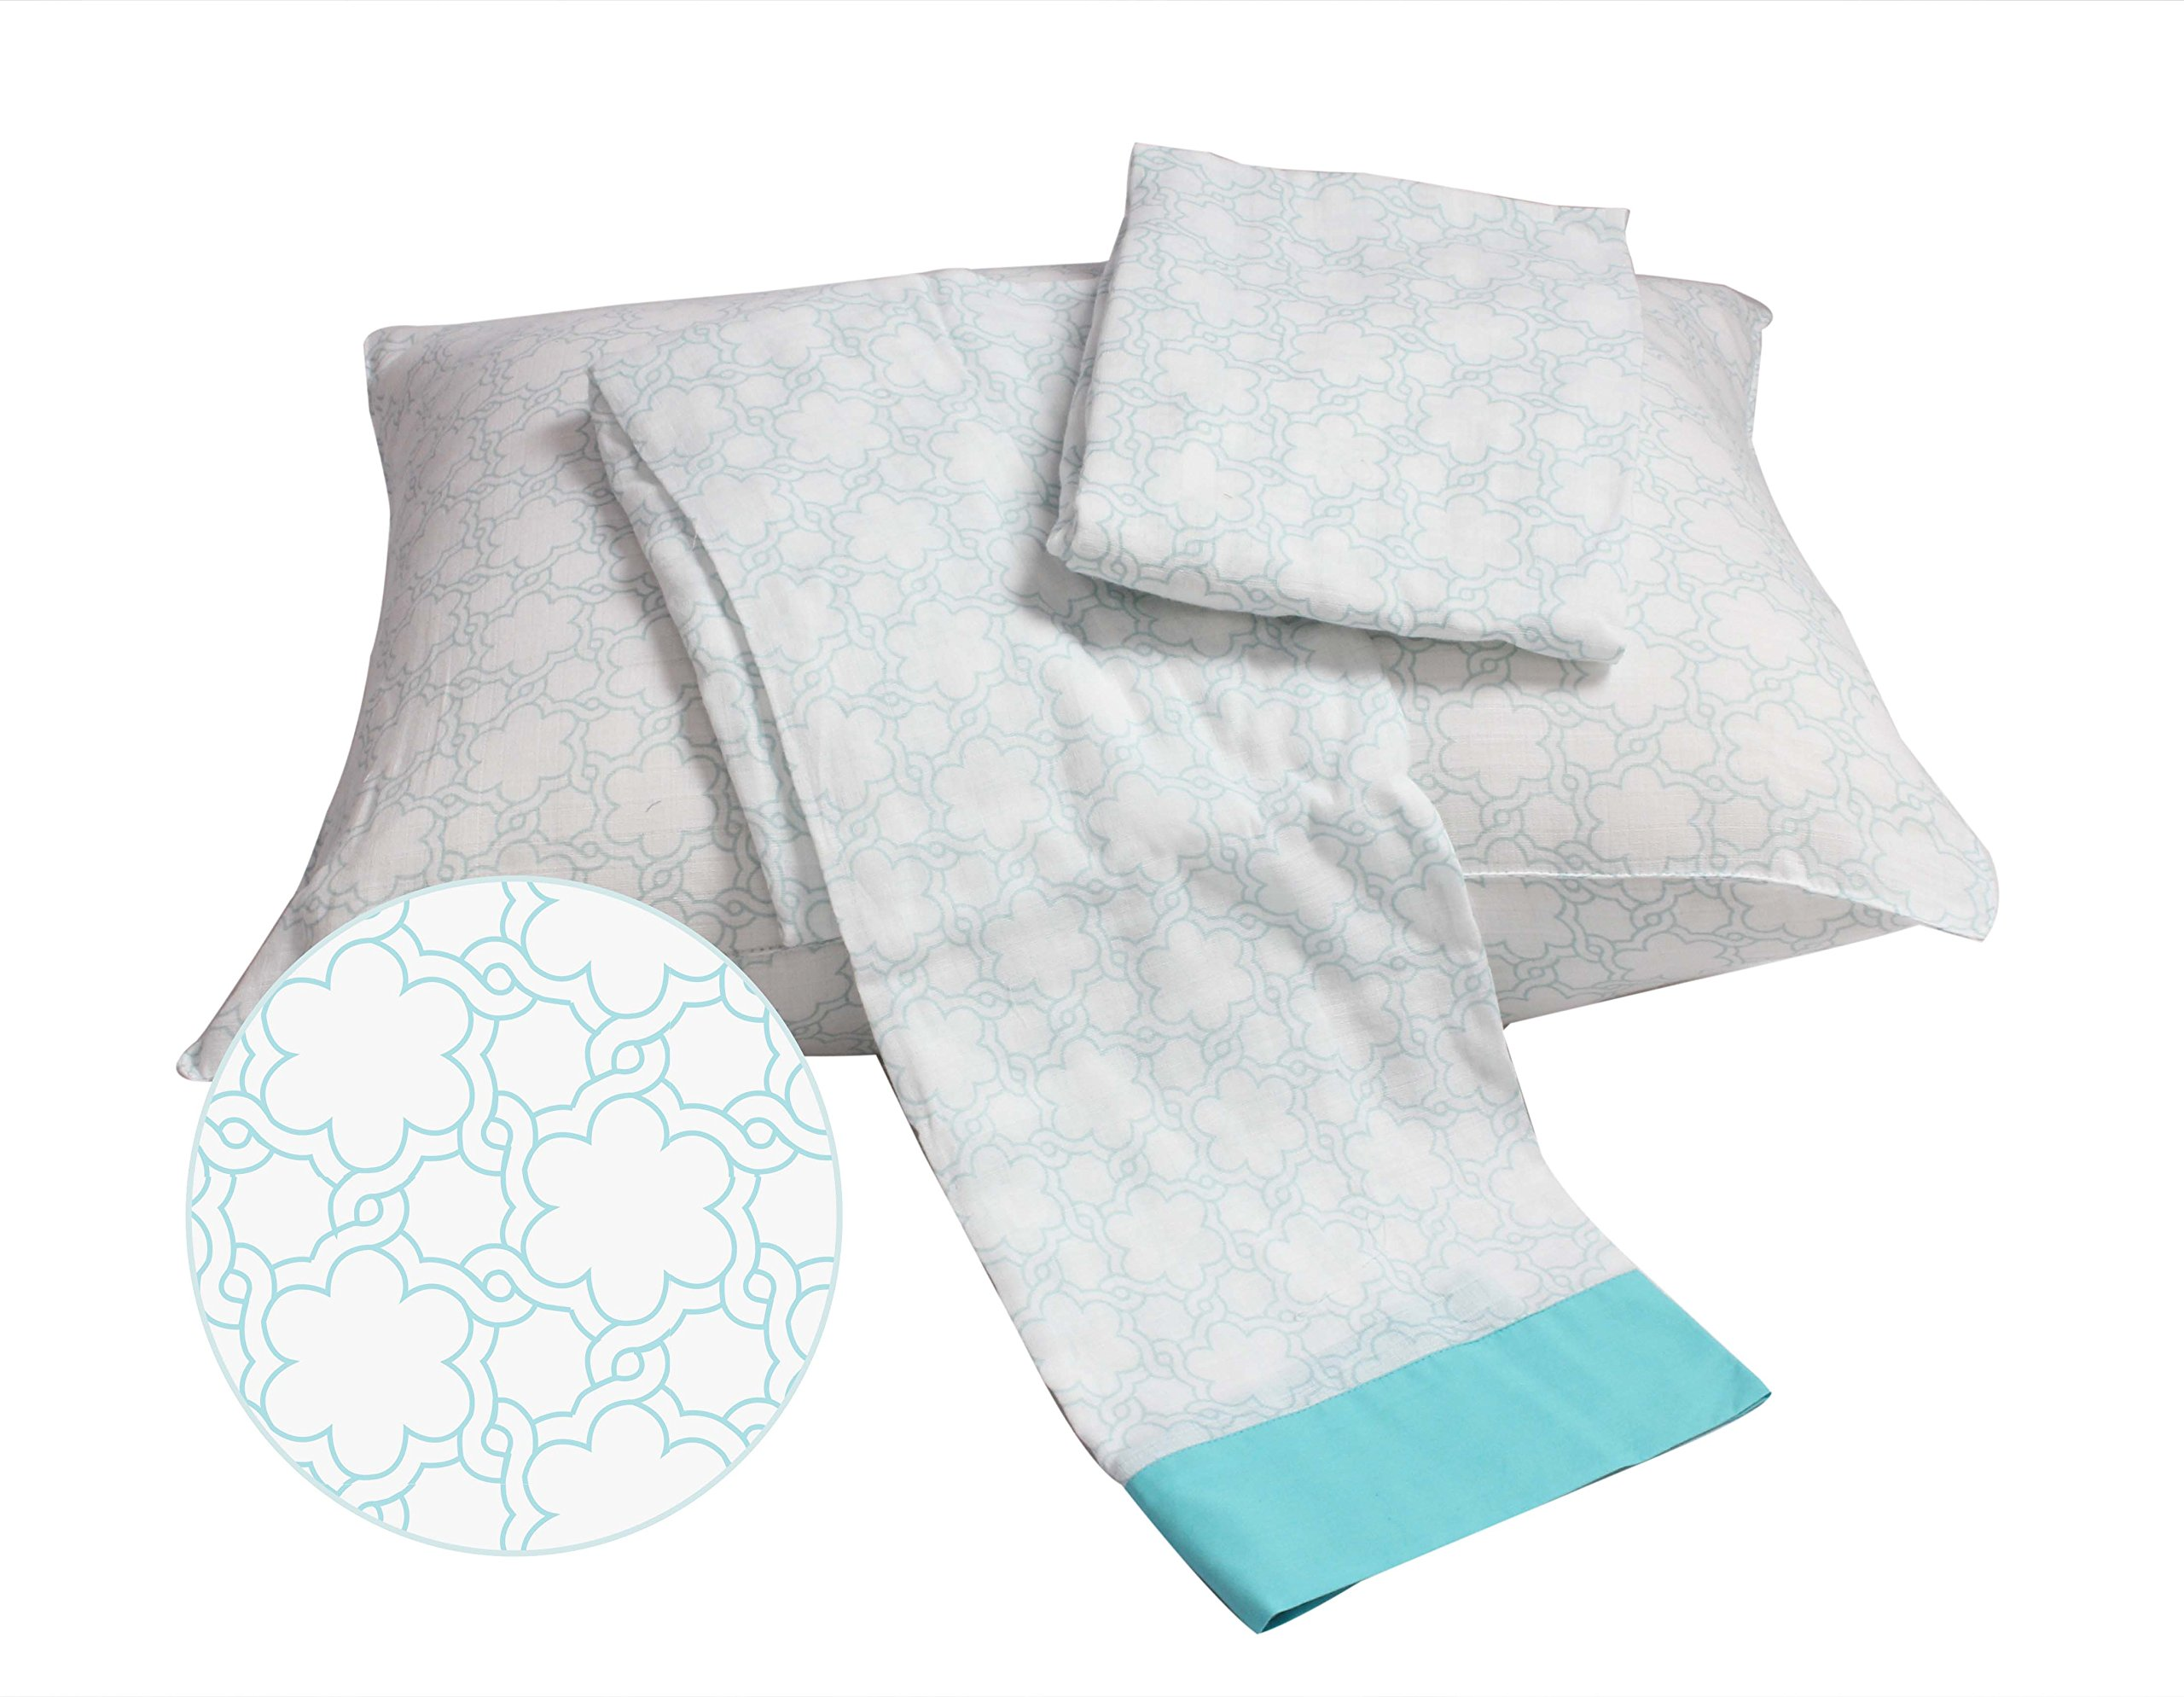 Bacati Floral Muslin 3 PieceToddler Bedding Sheet Set, Aqua